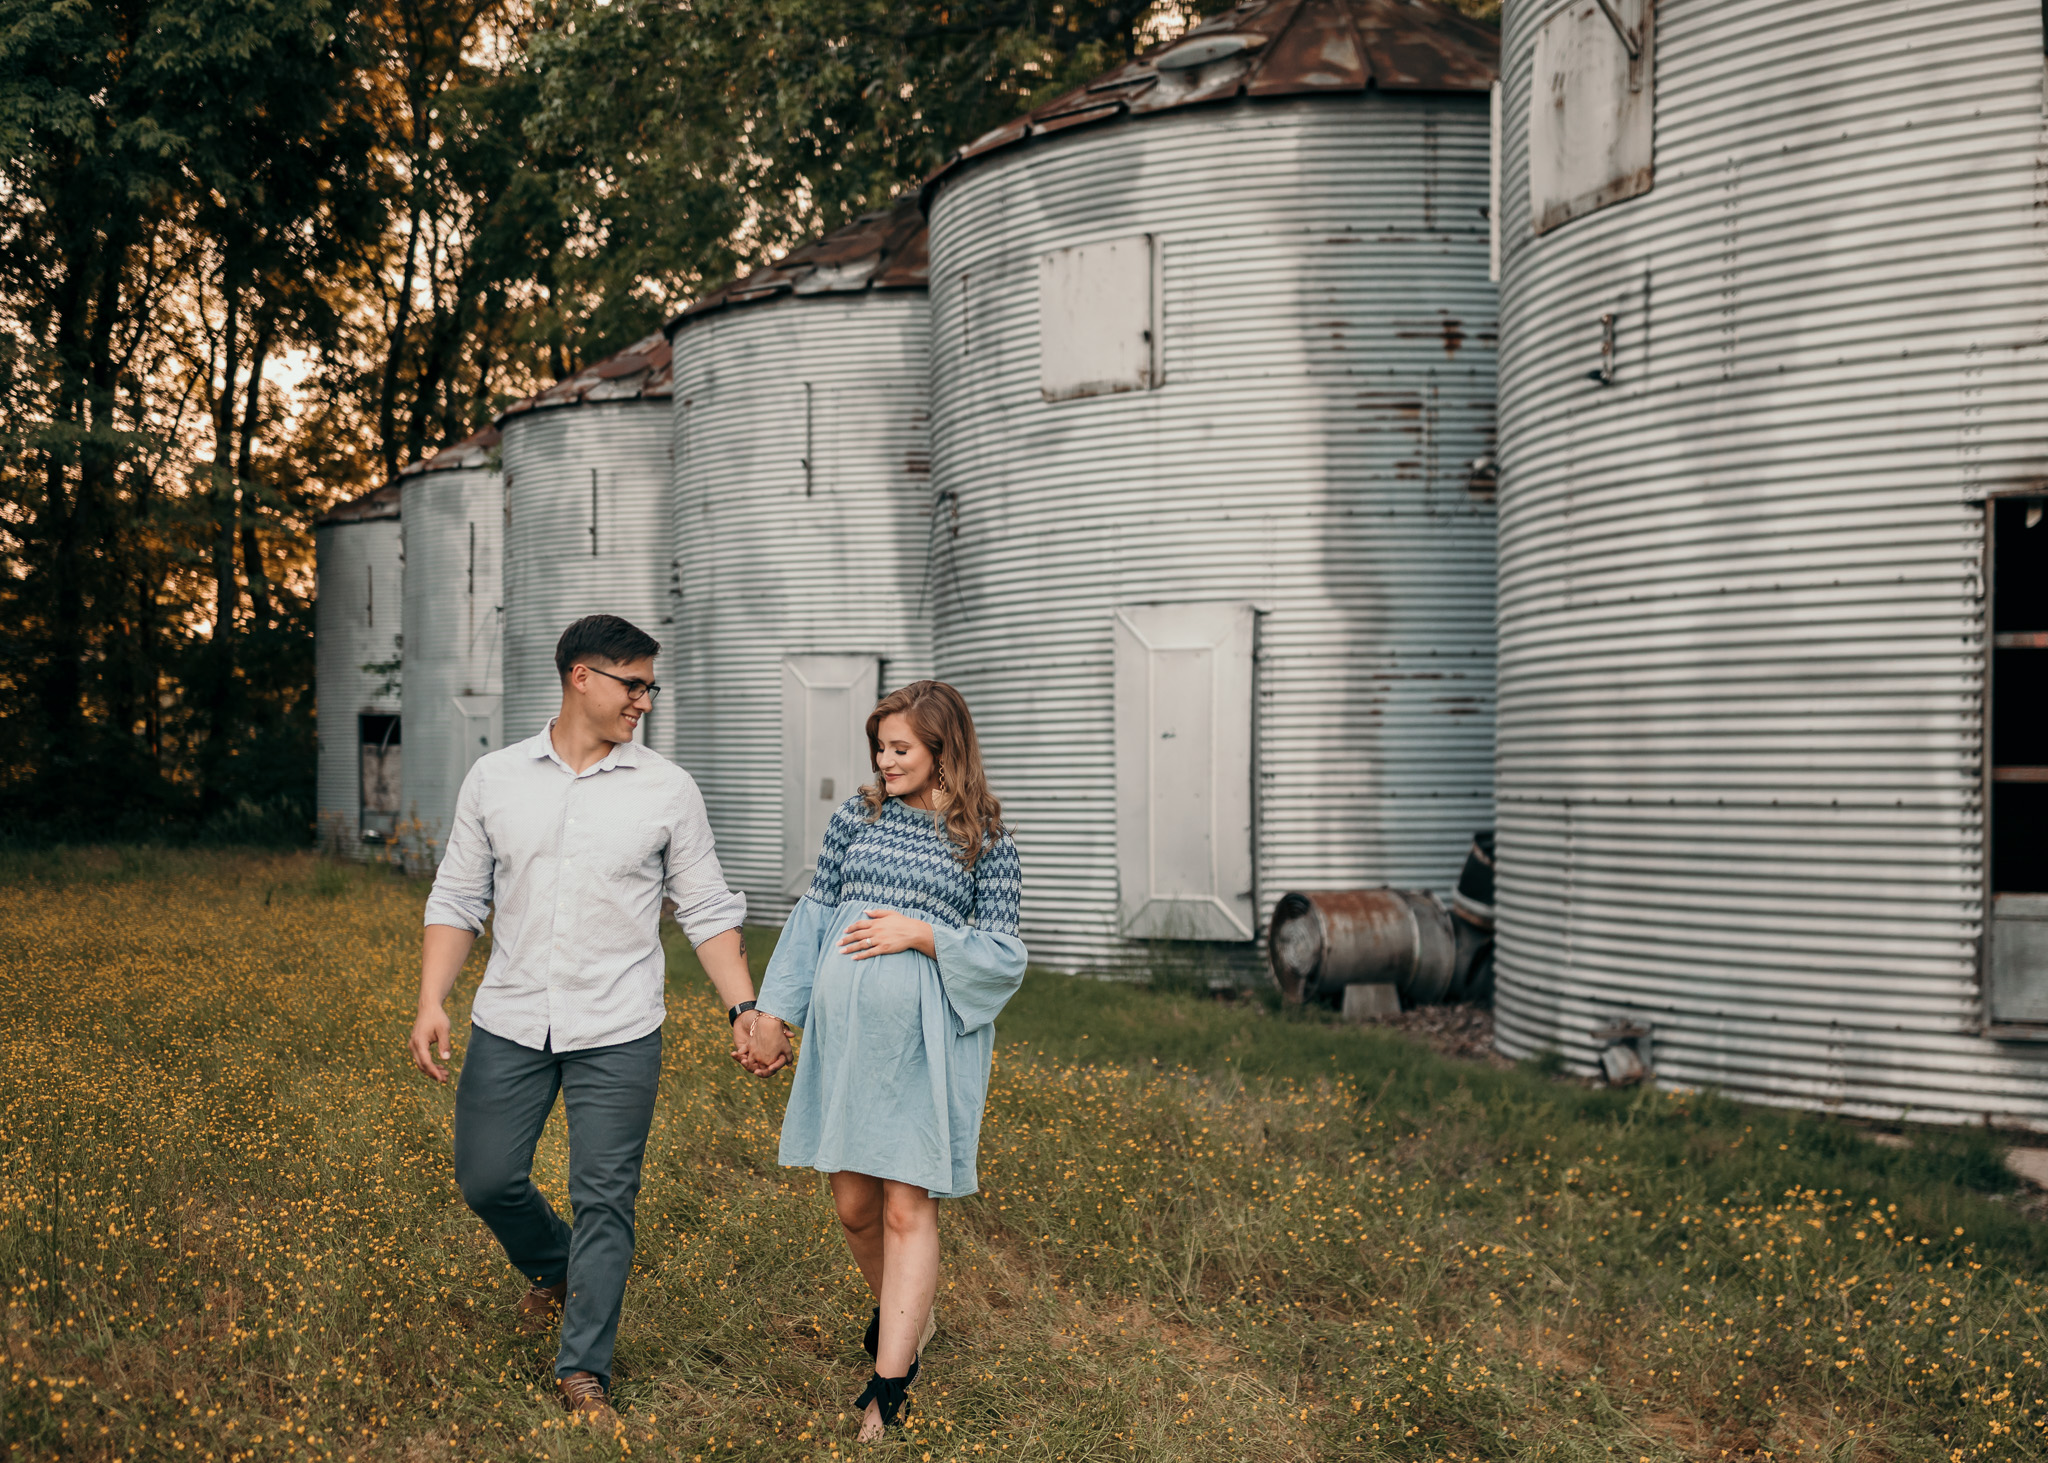 couple walking holding hands maternity pose